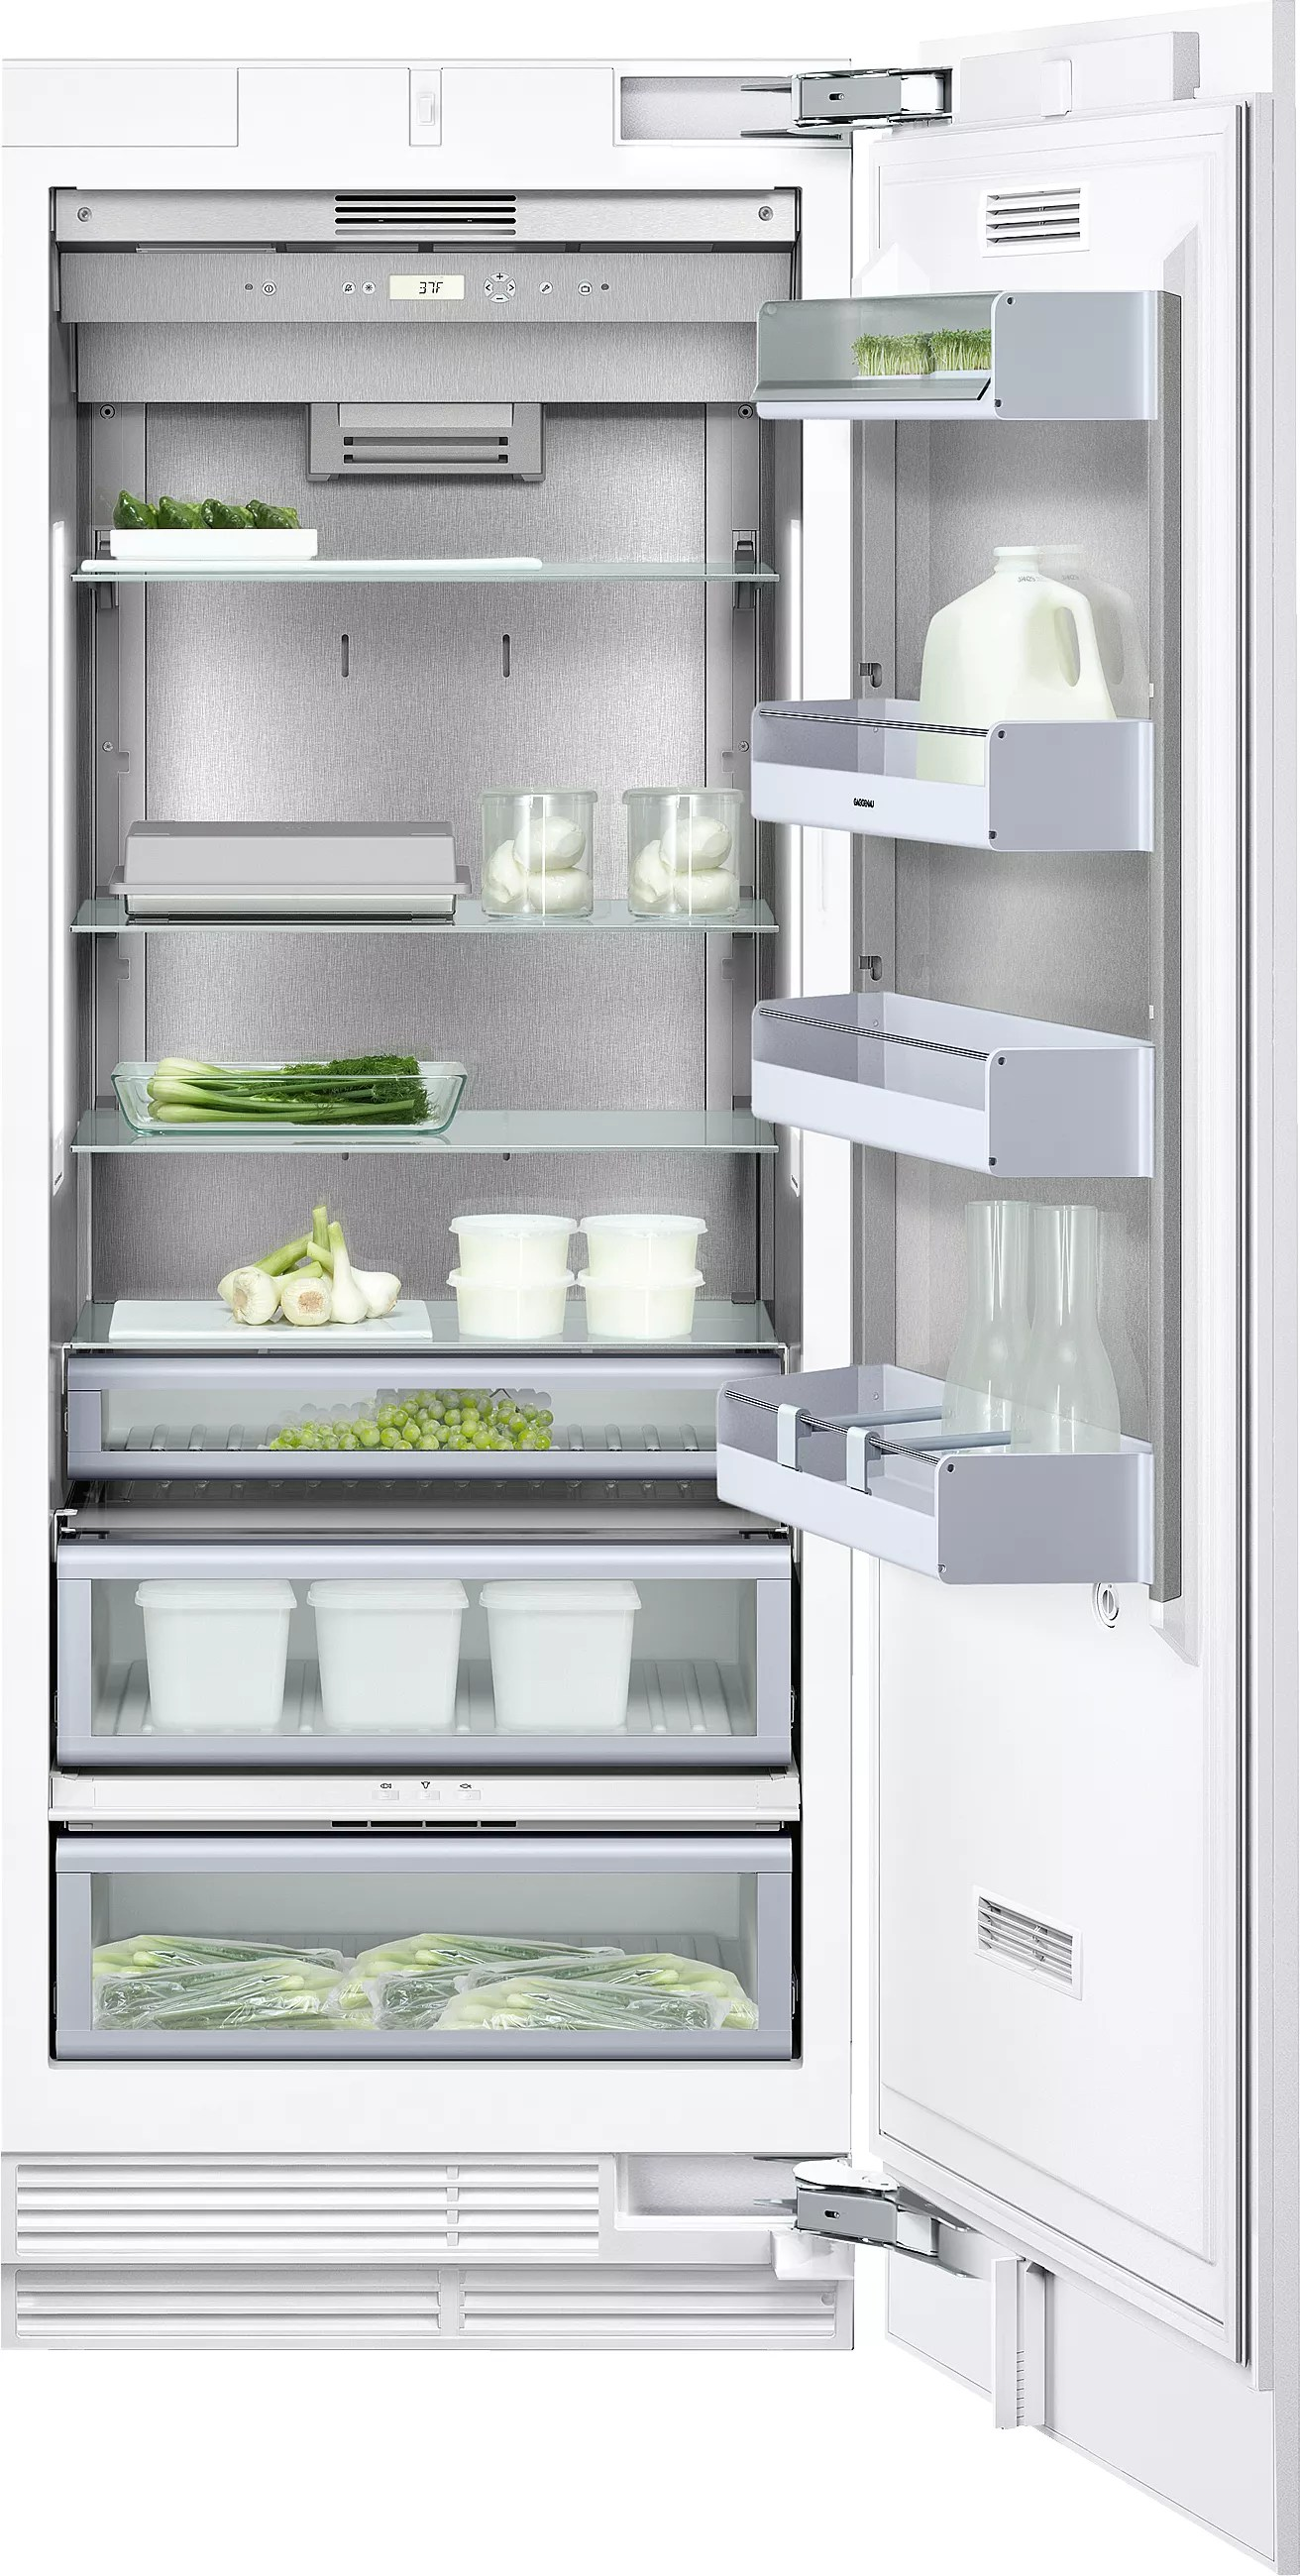 Gaggenau RF461701 24 Inch BuiltIn Freezer Column with Automatic Ice Maker Automatic Defrost